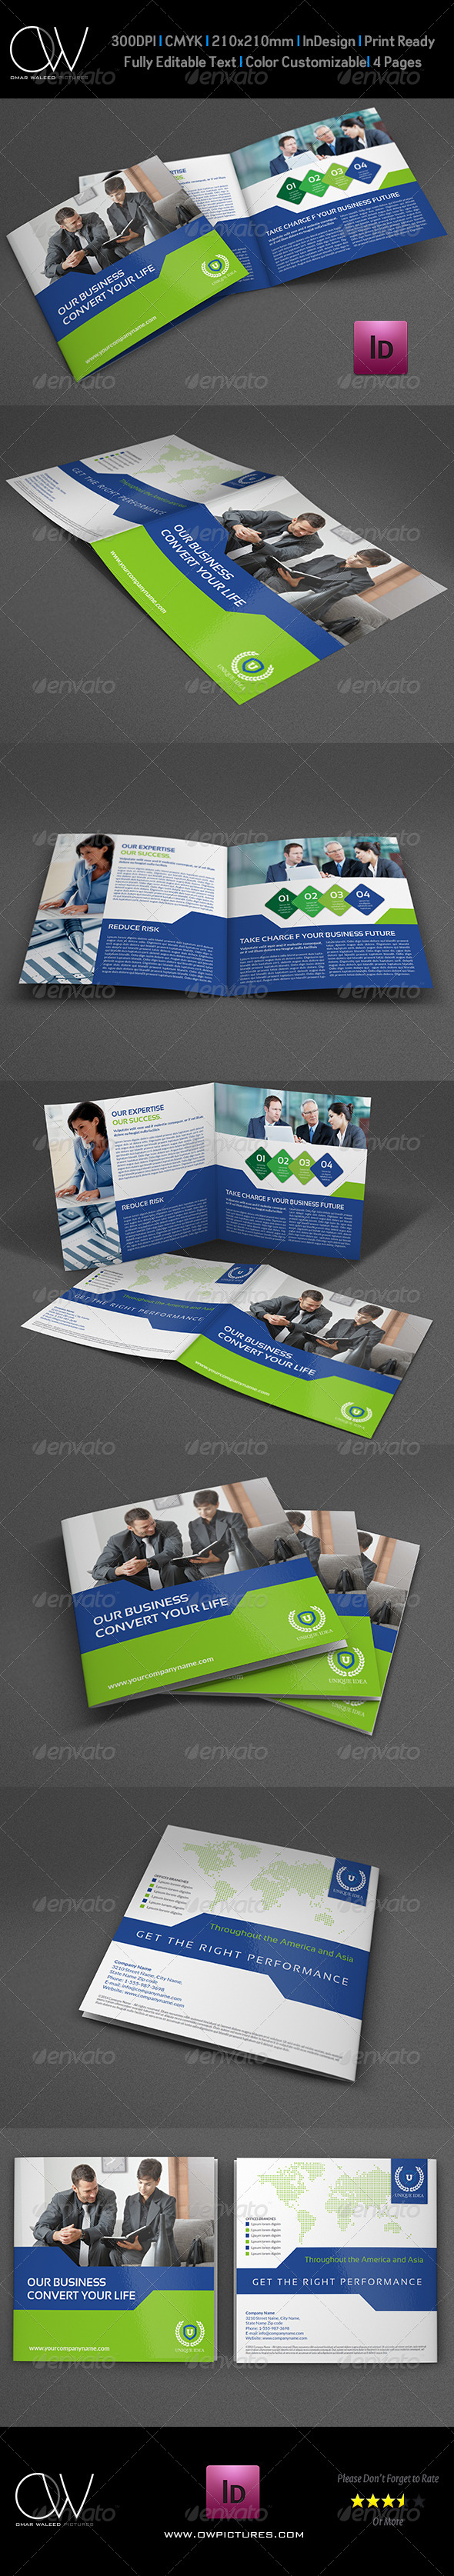 GraphicRiver Company Brochure Bi-Fold Square Template Vol.25 7600728